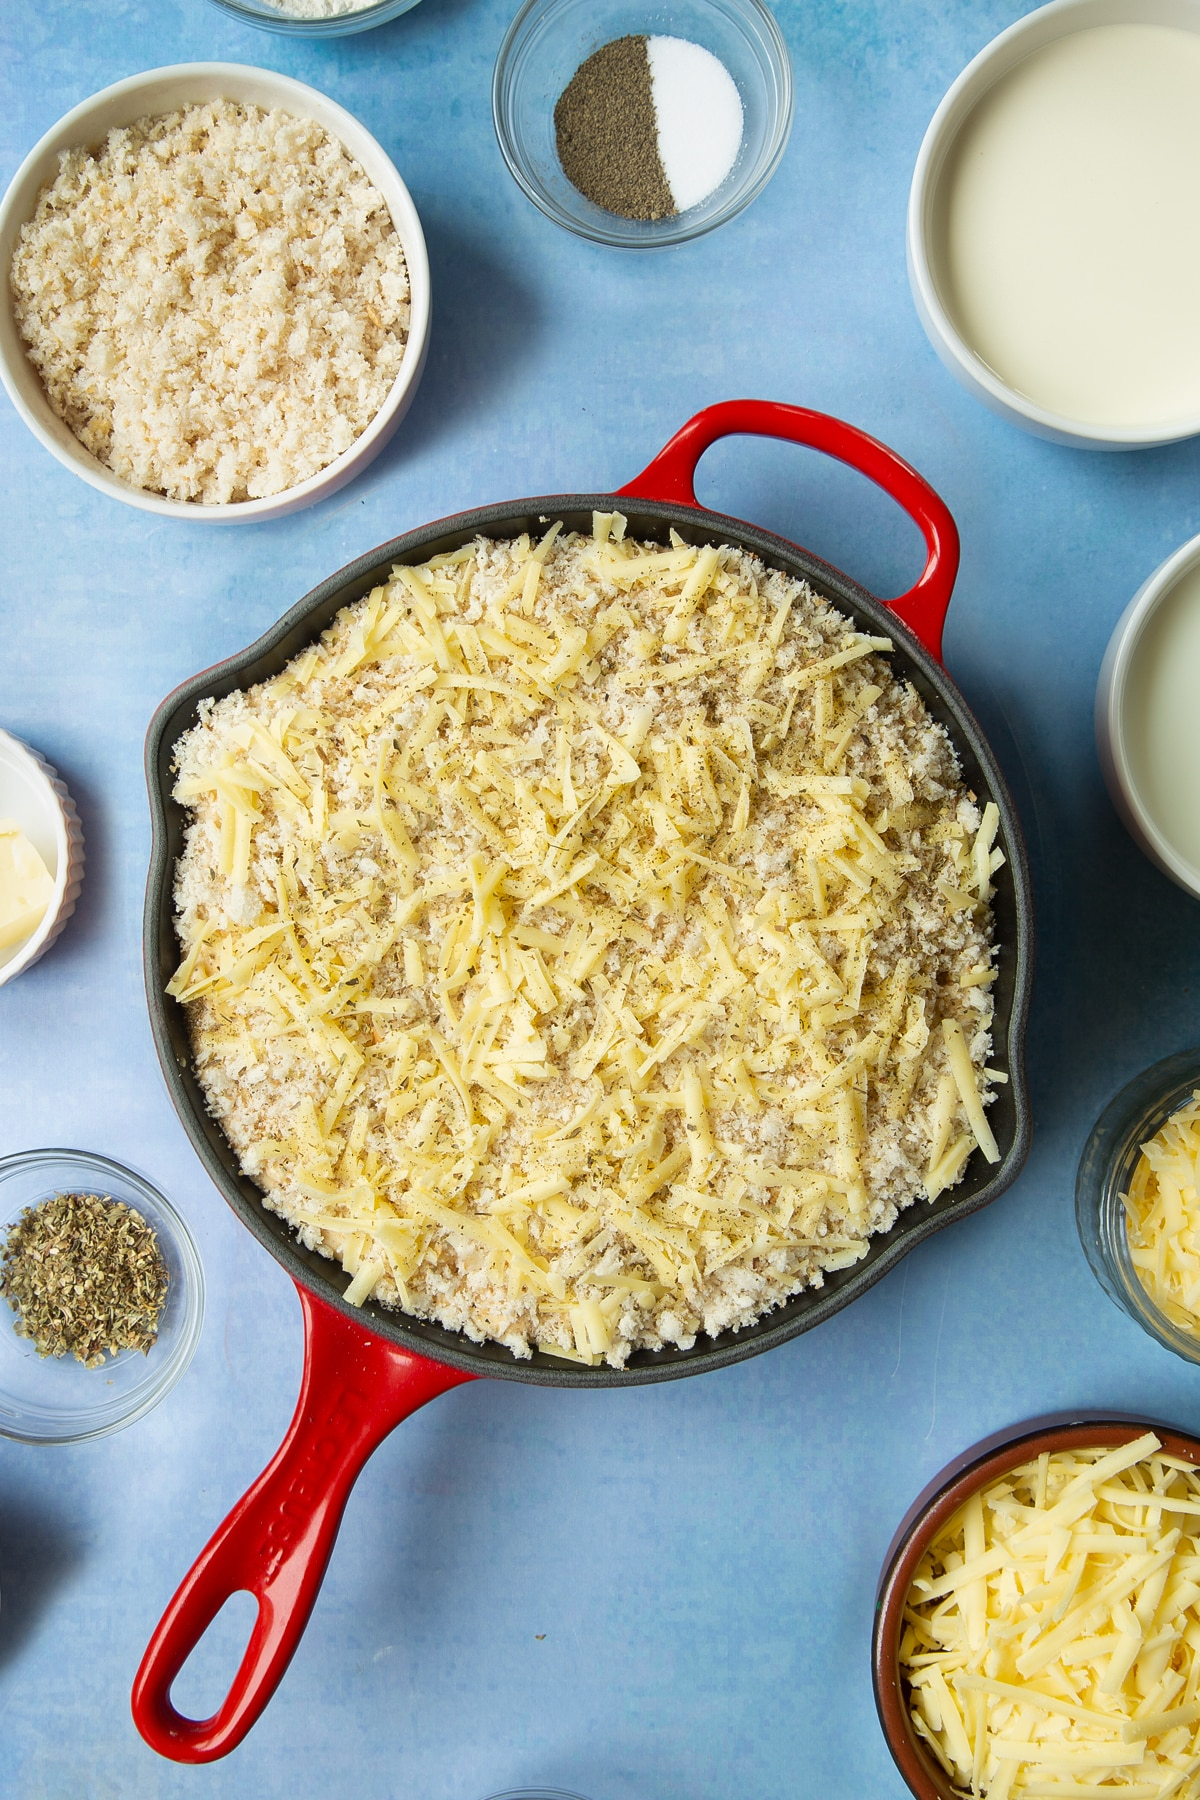 Spicy, cheesy, herby mac and cheese in a skillet with breadcrumbs, cheese and herbs on top. Ingredients to make garlic and herb mac and cheese surround the skillet.